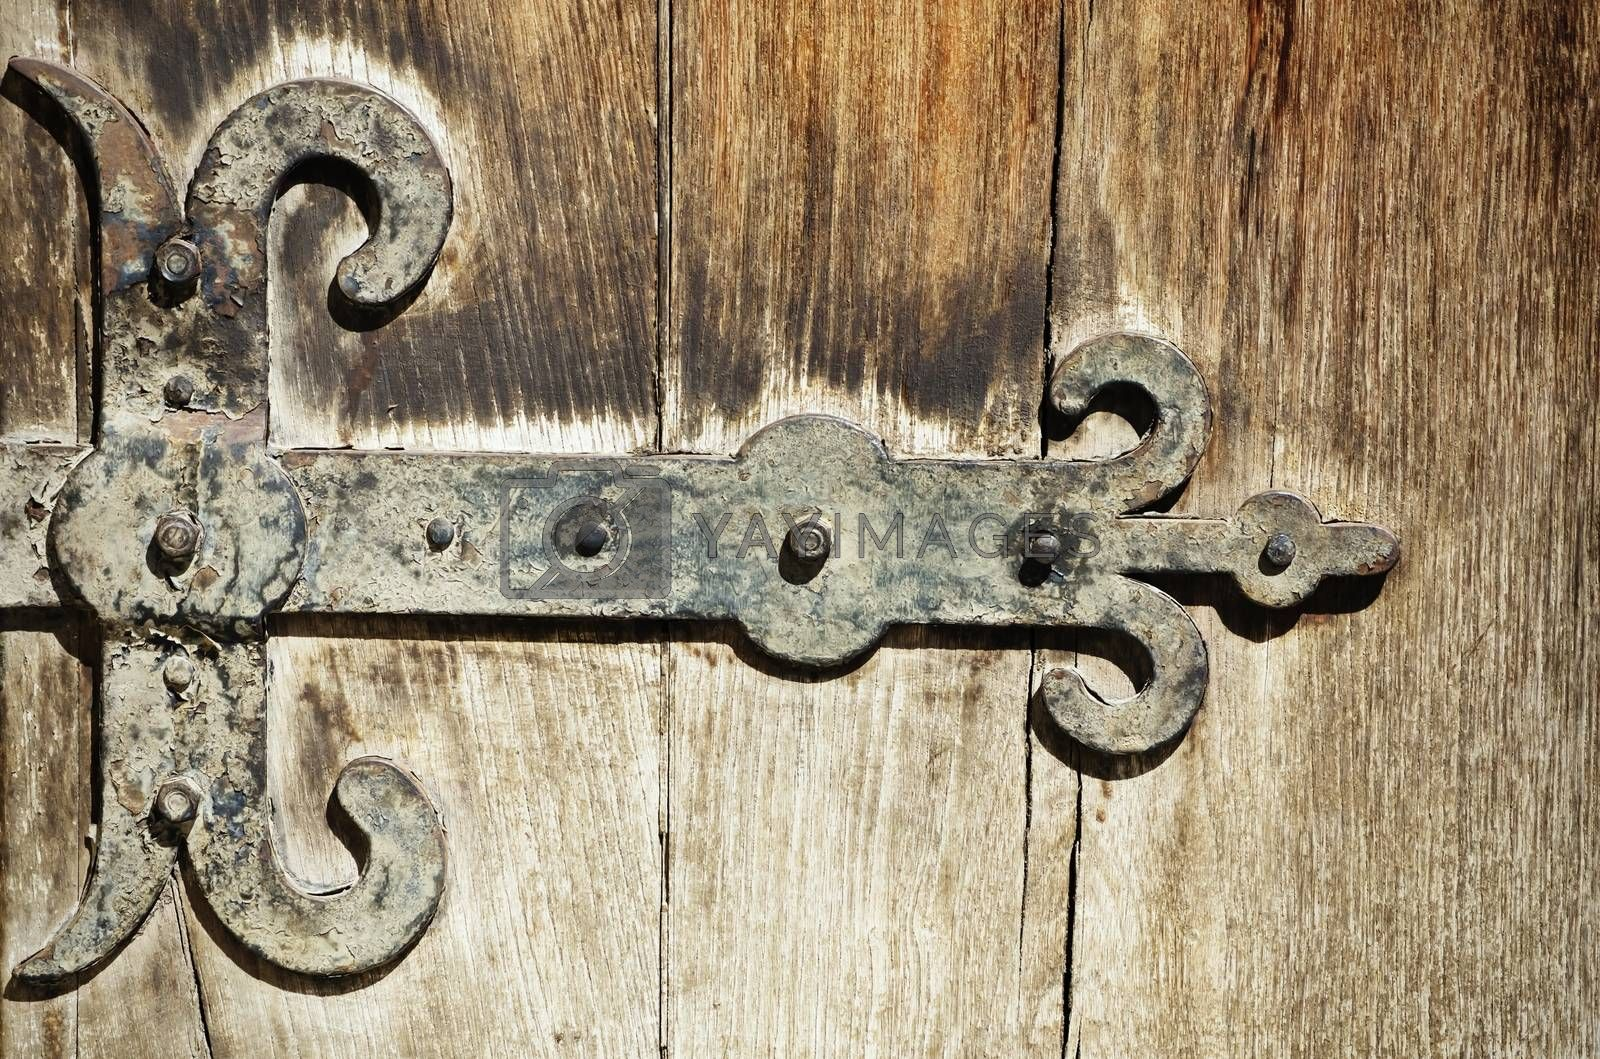 Photo of The Vintage Door Hinges Over Old Wooden Background